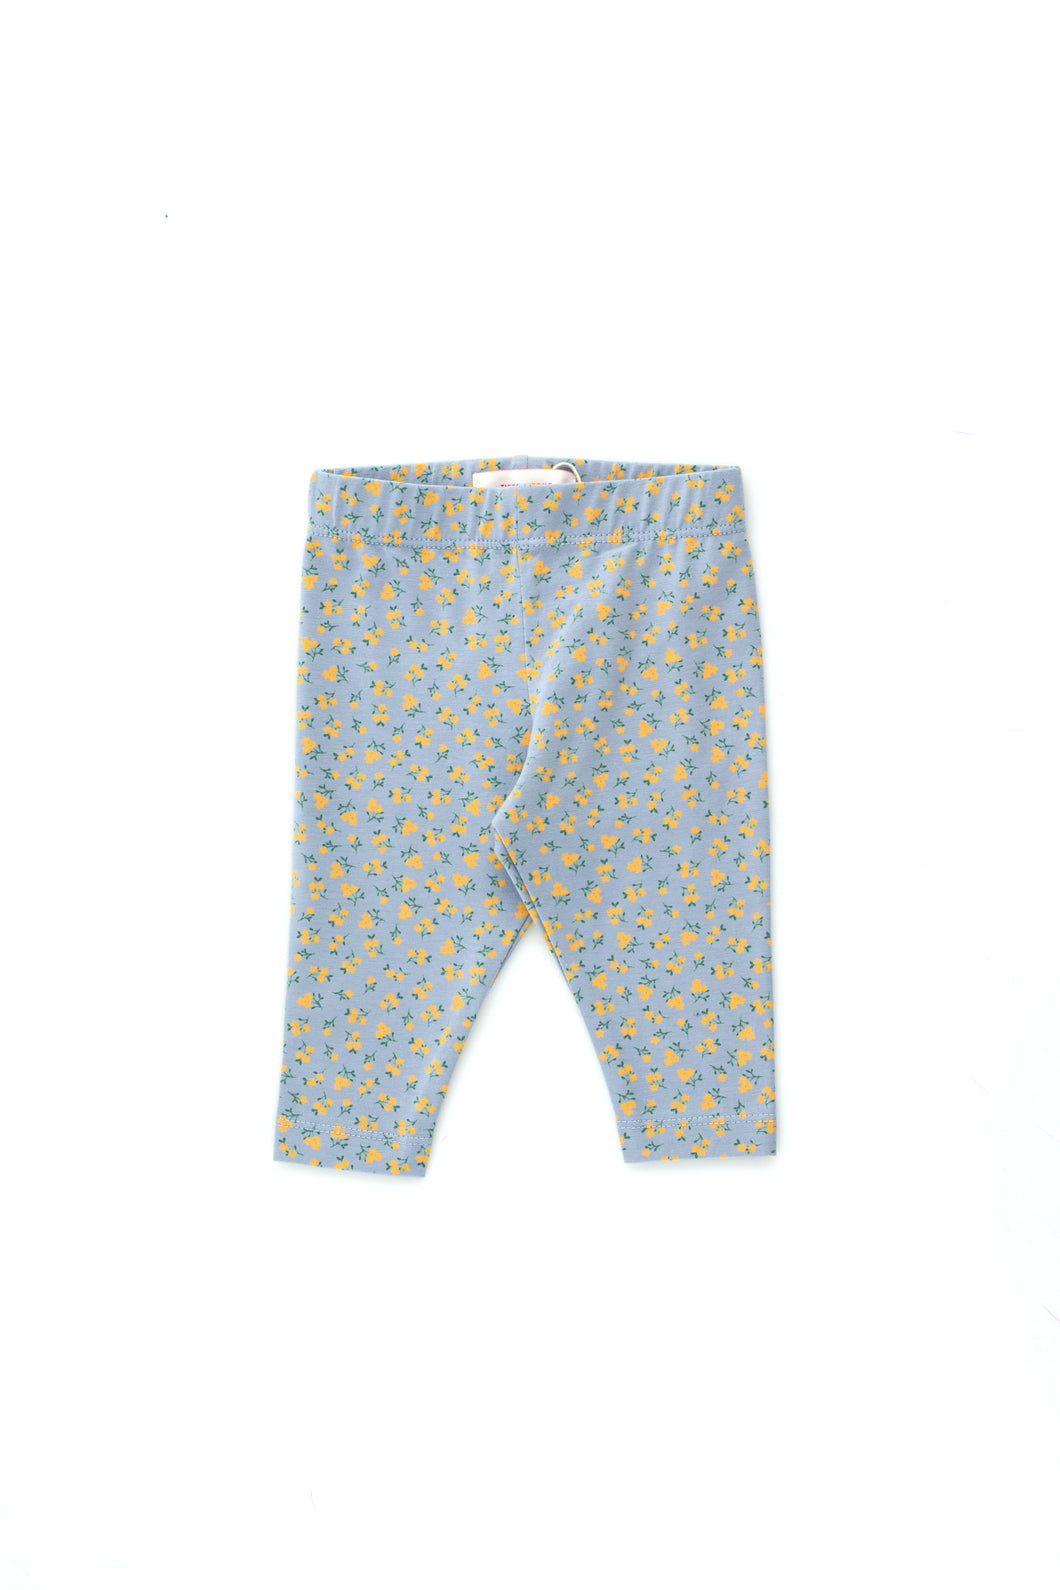 Tinycottons SMALL FLOWERS BABY PANT summer grey/honey